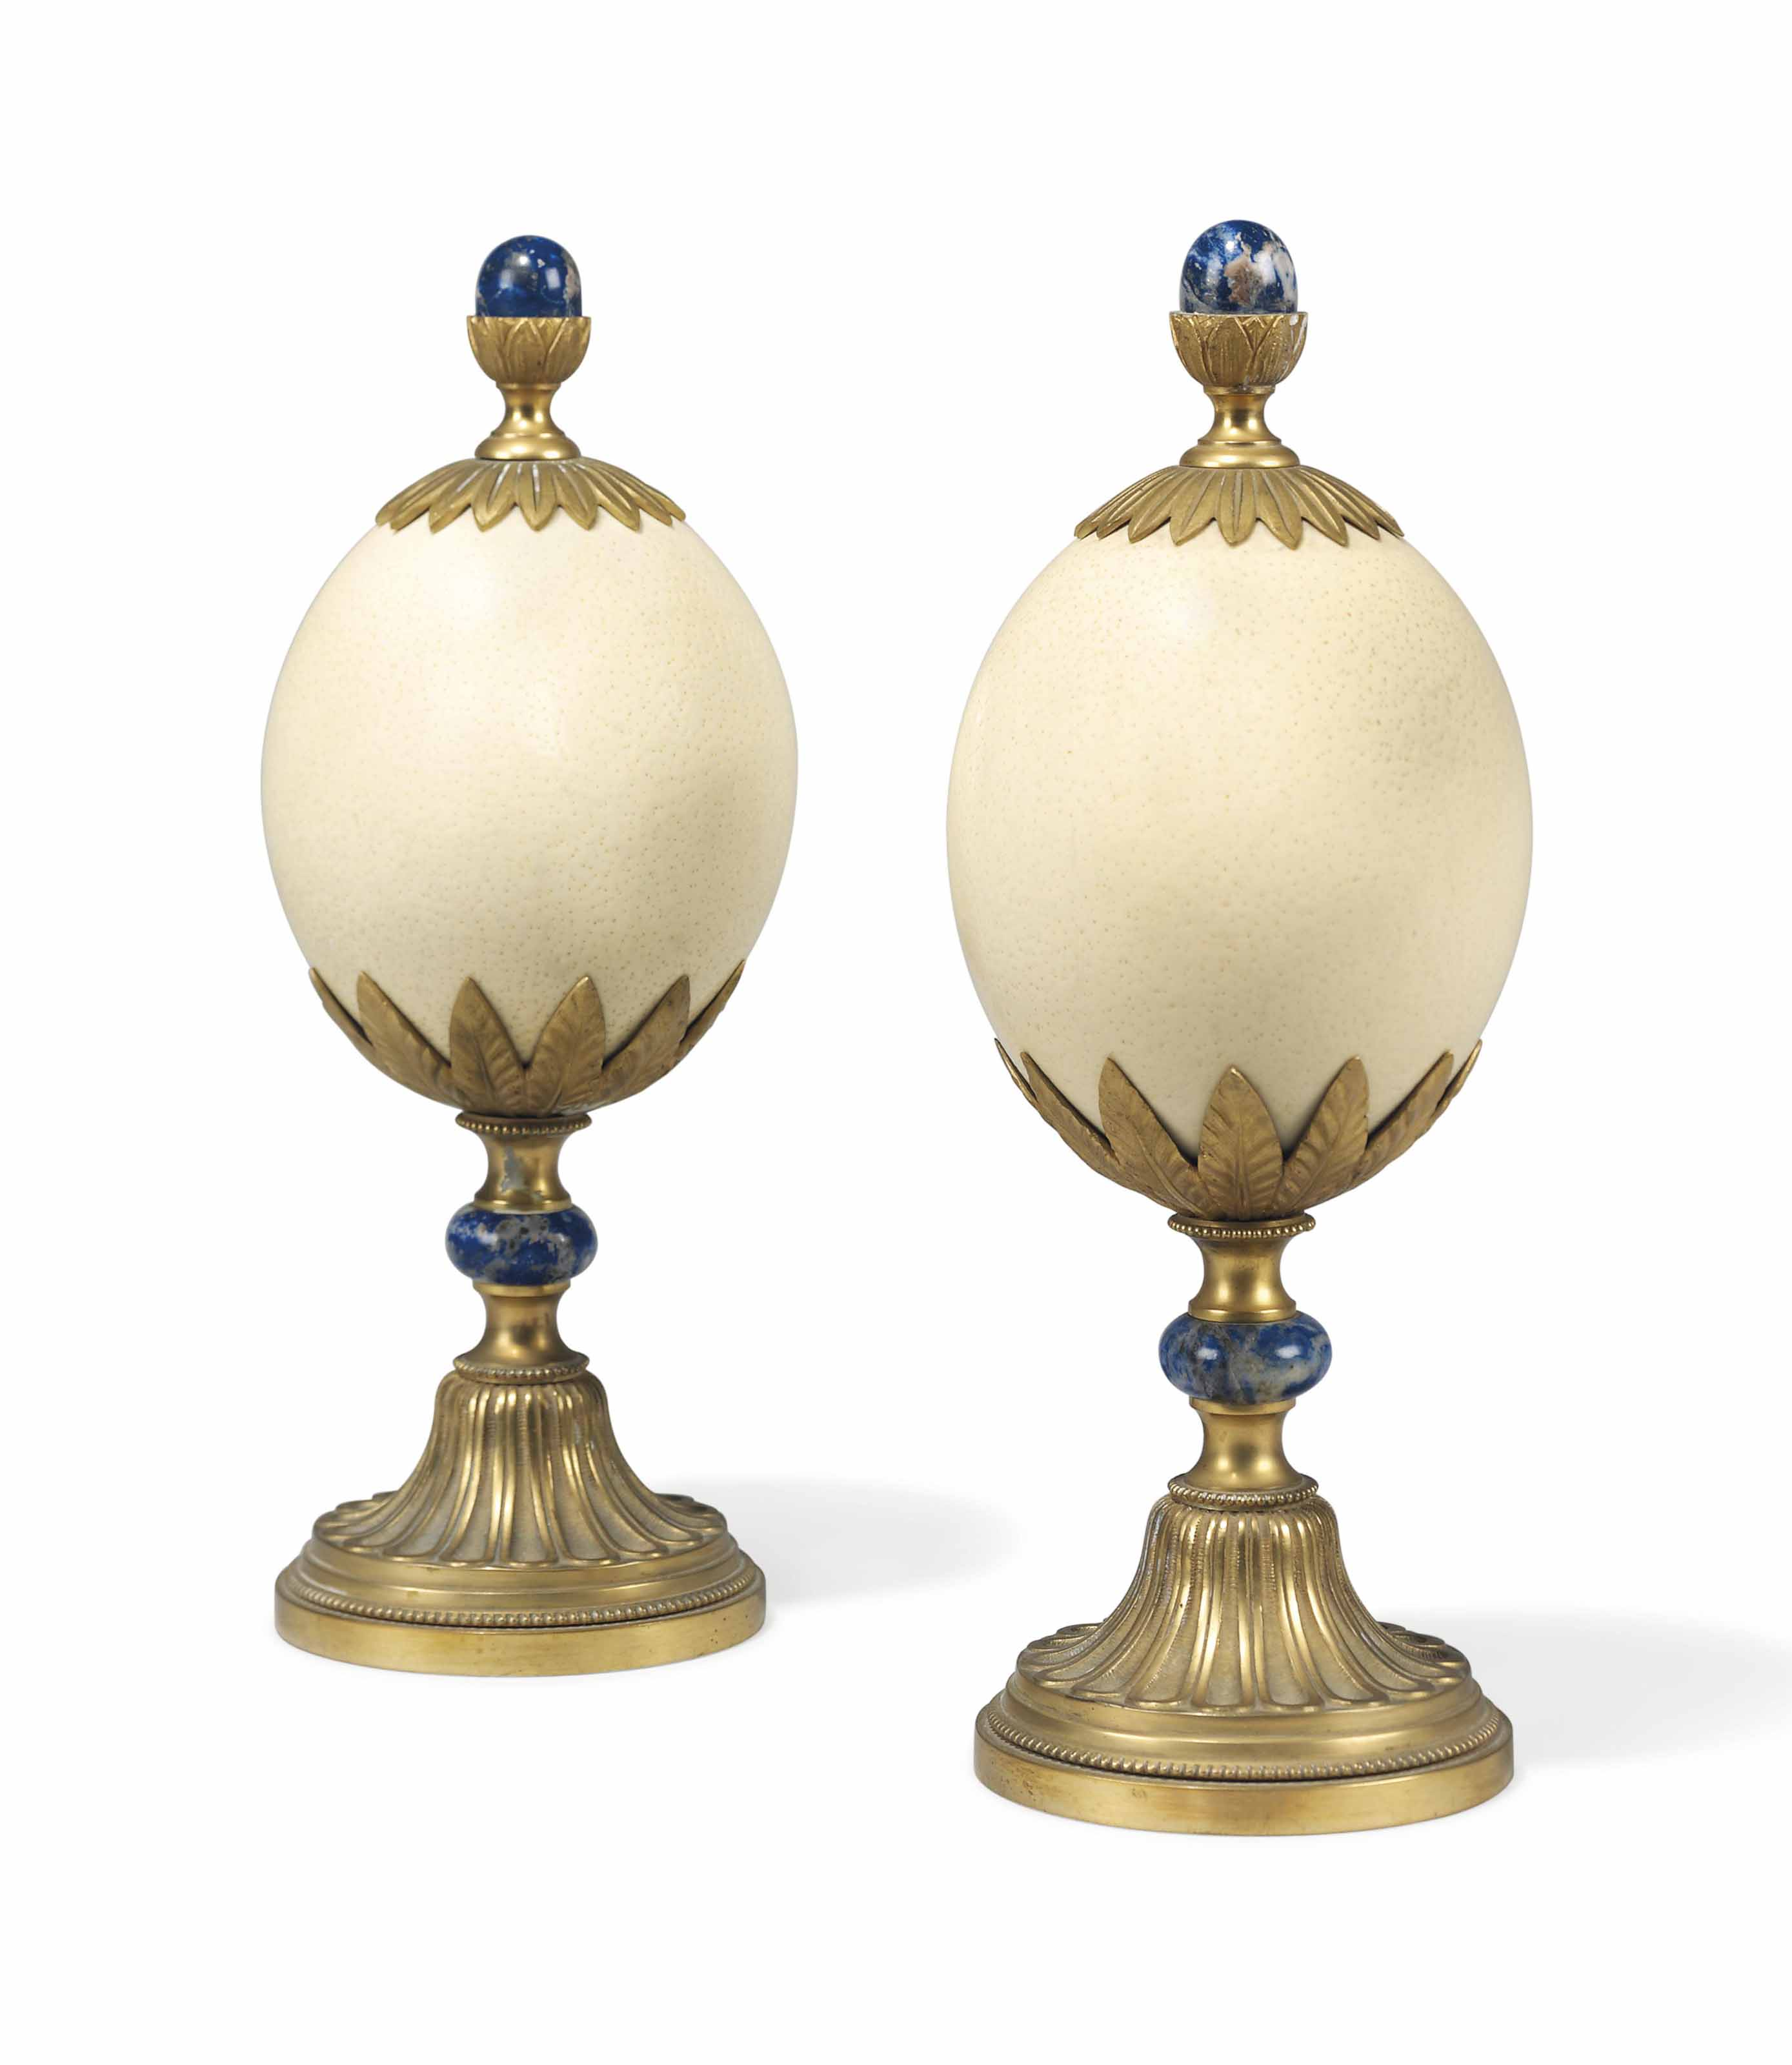 A PAIR OF ORMOLU AND LAPIS LAZ